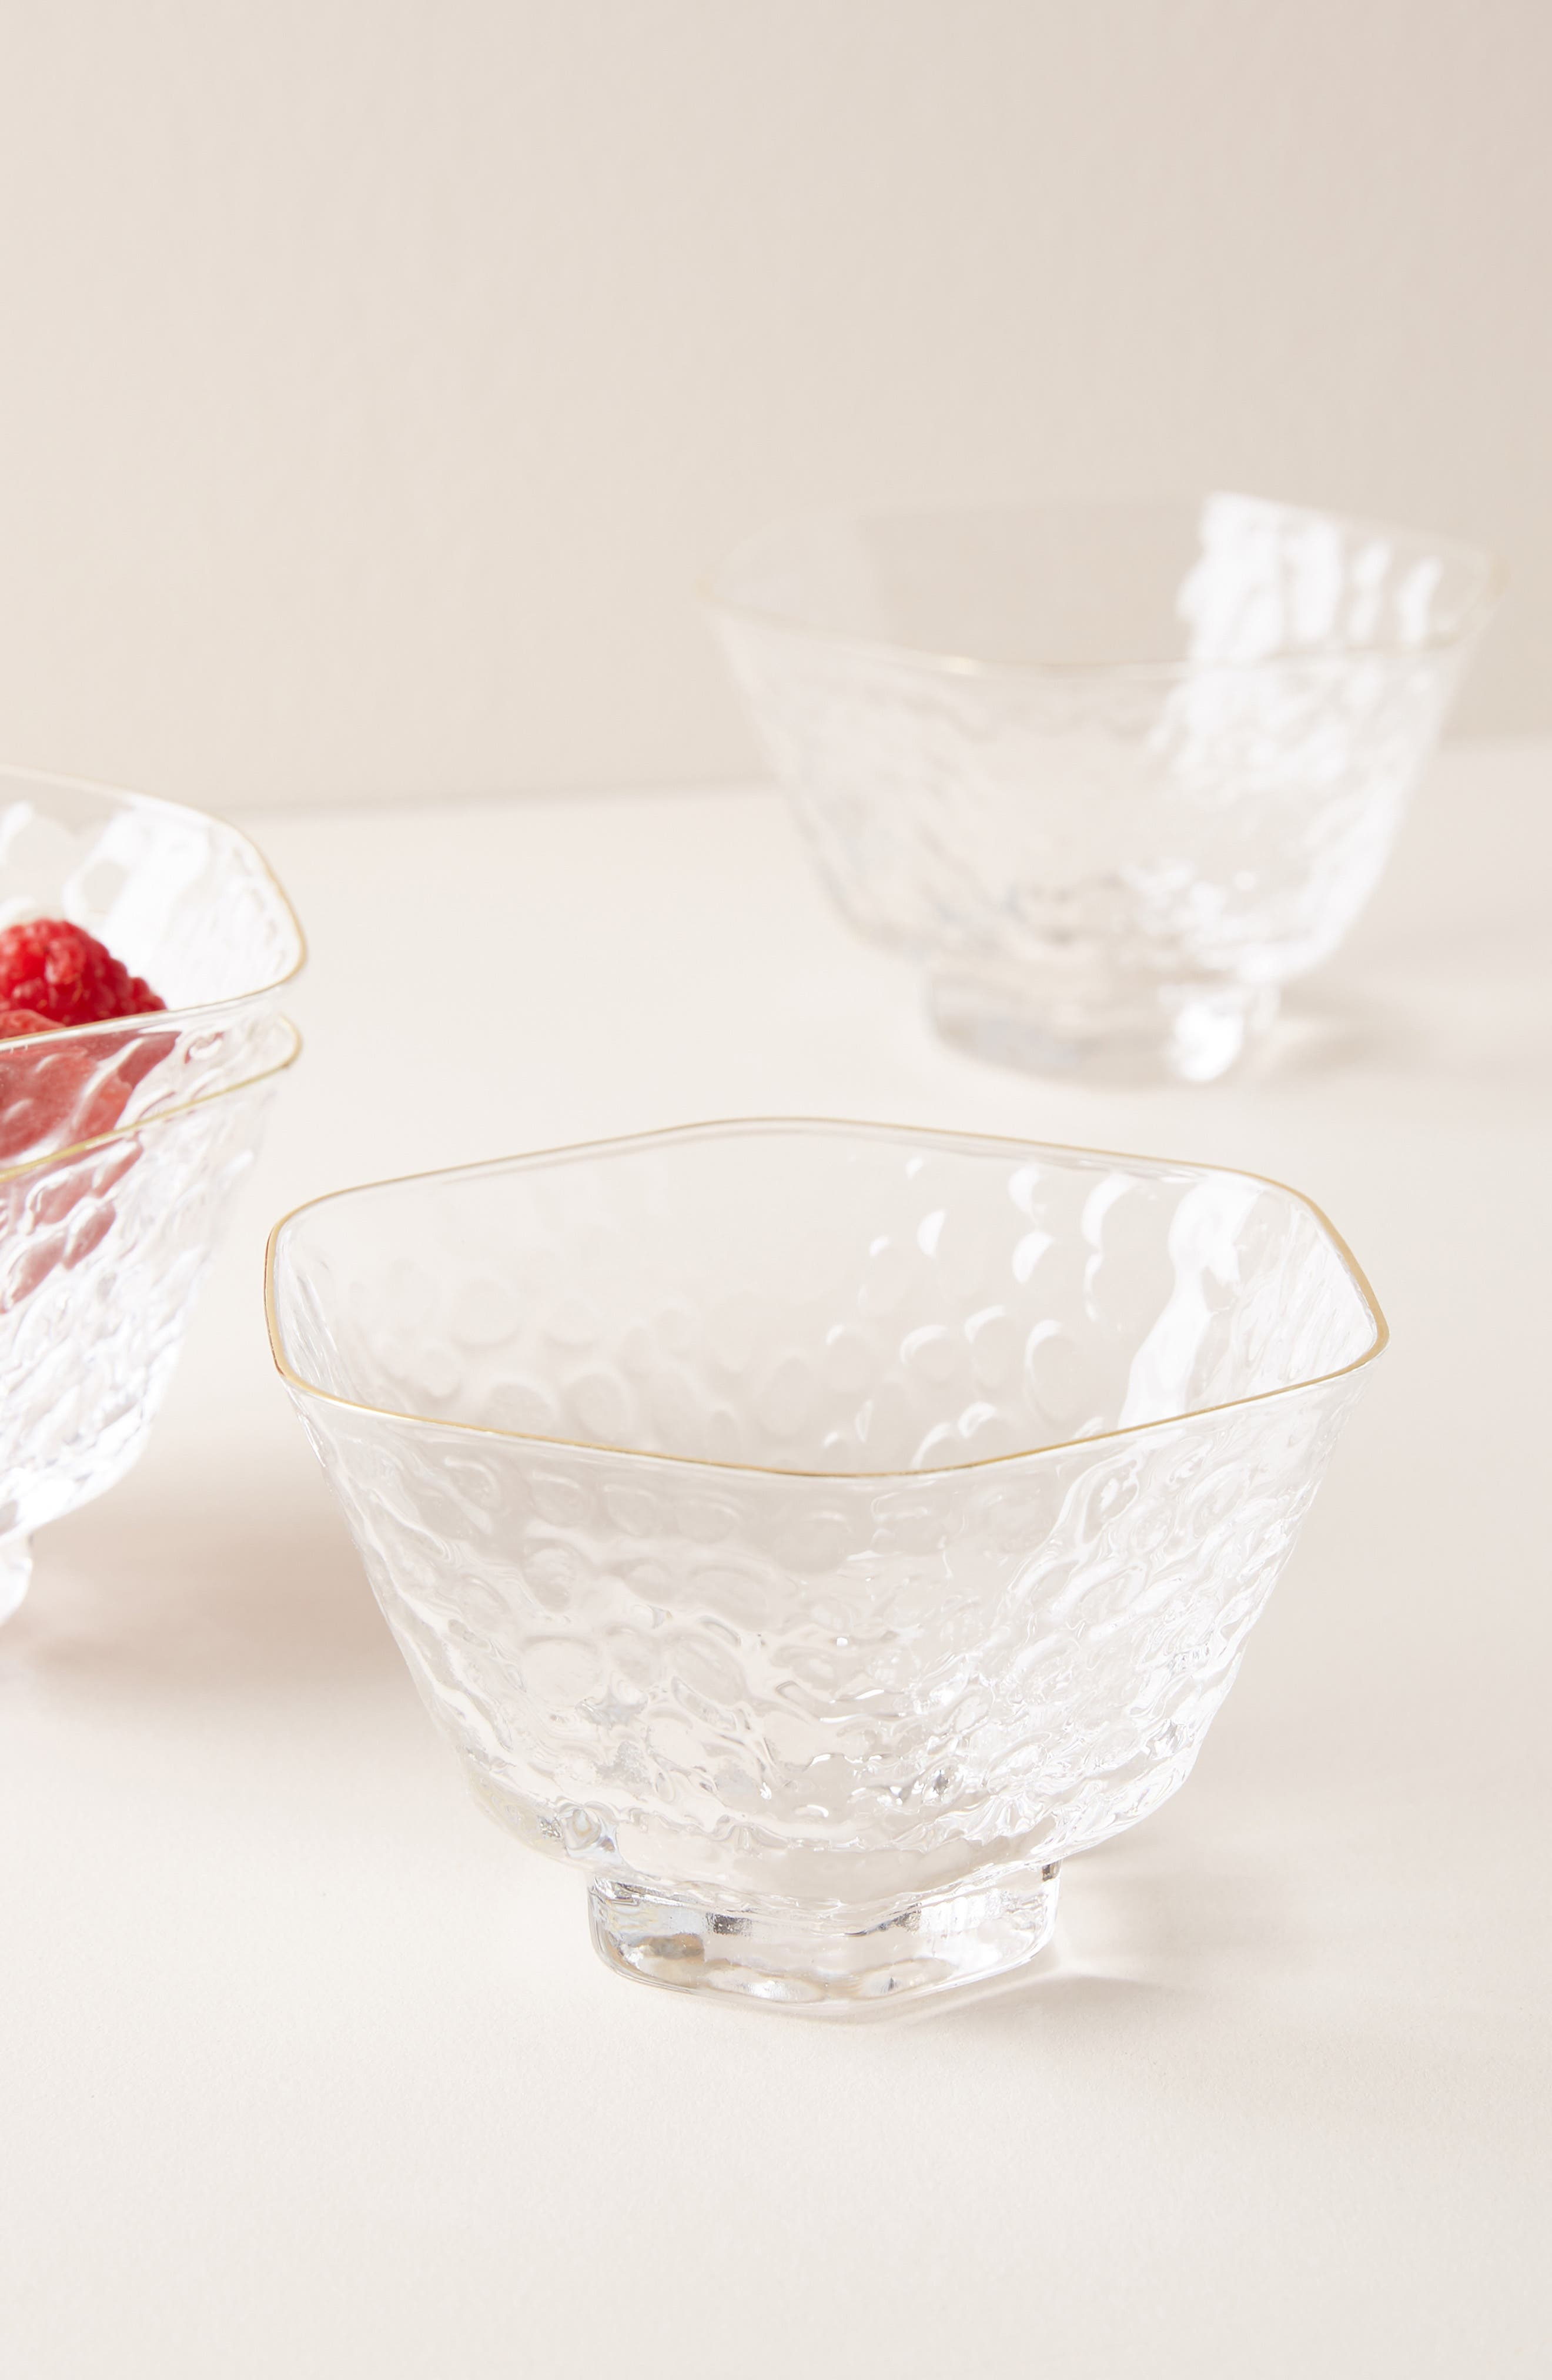 anthropologie cici set of 4 nut bowls, size one size - white